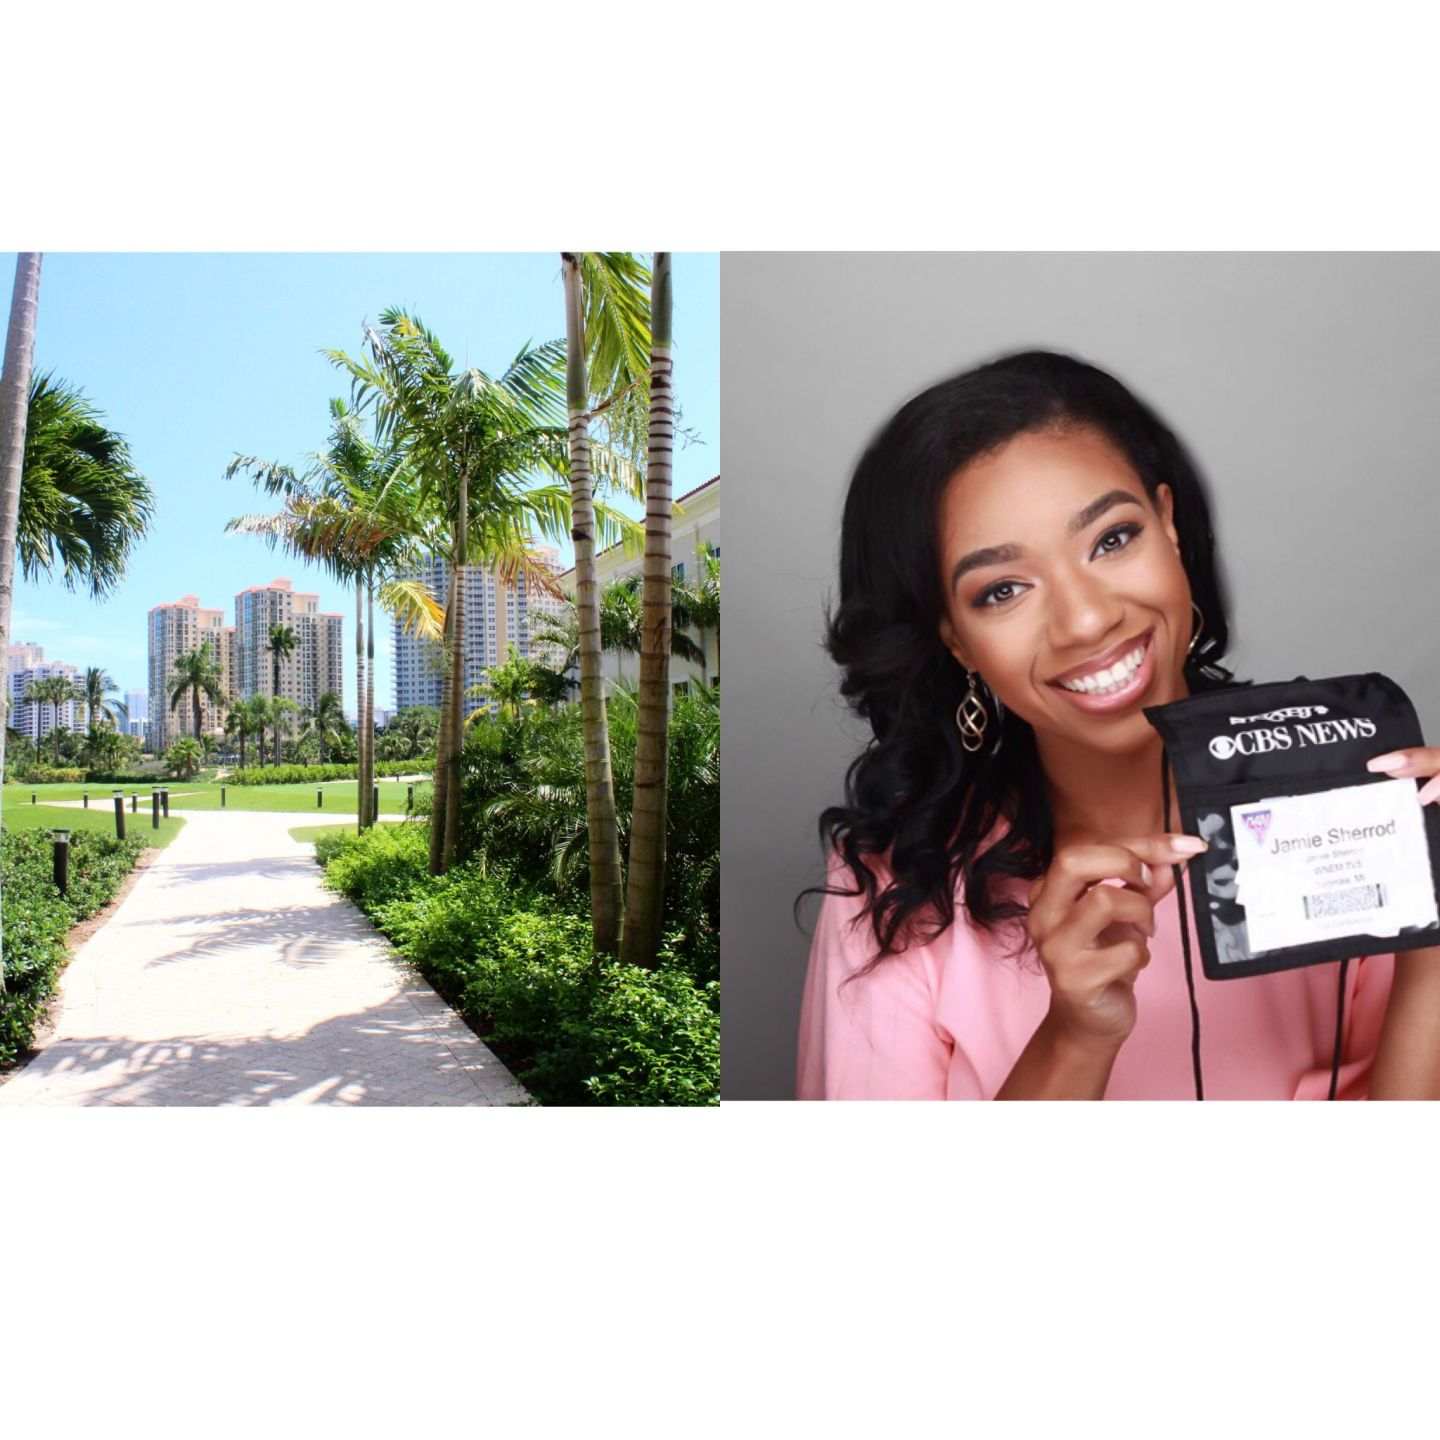 Florida Vacation Pt 2: NABJ Miami Conference 2019